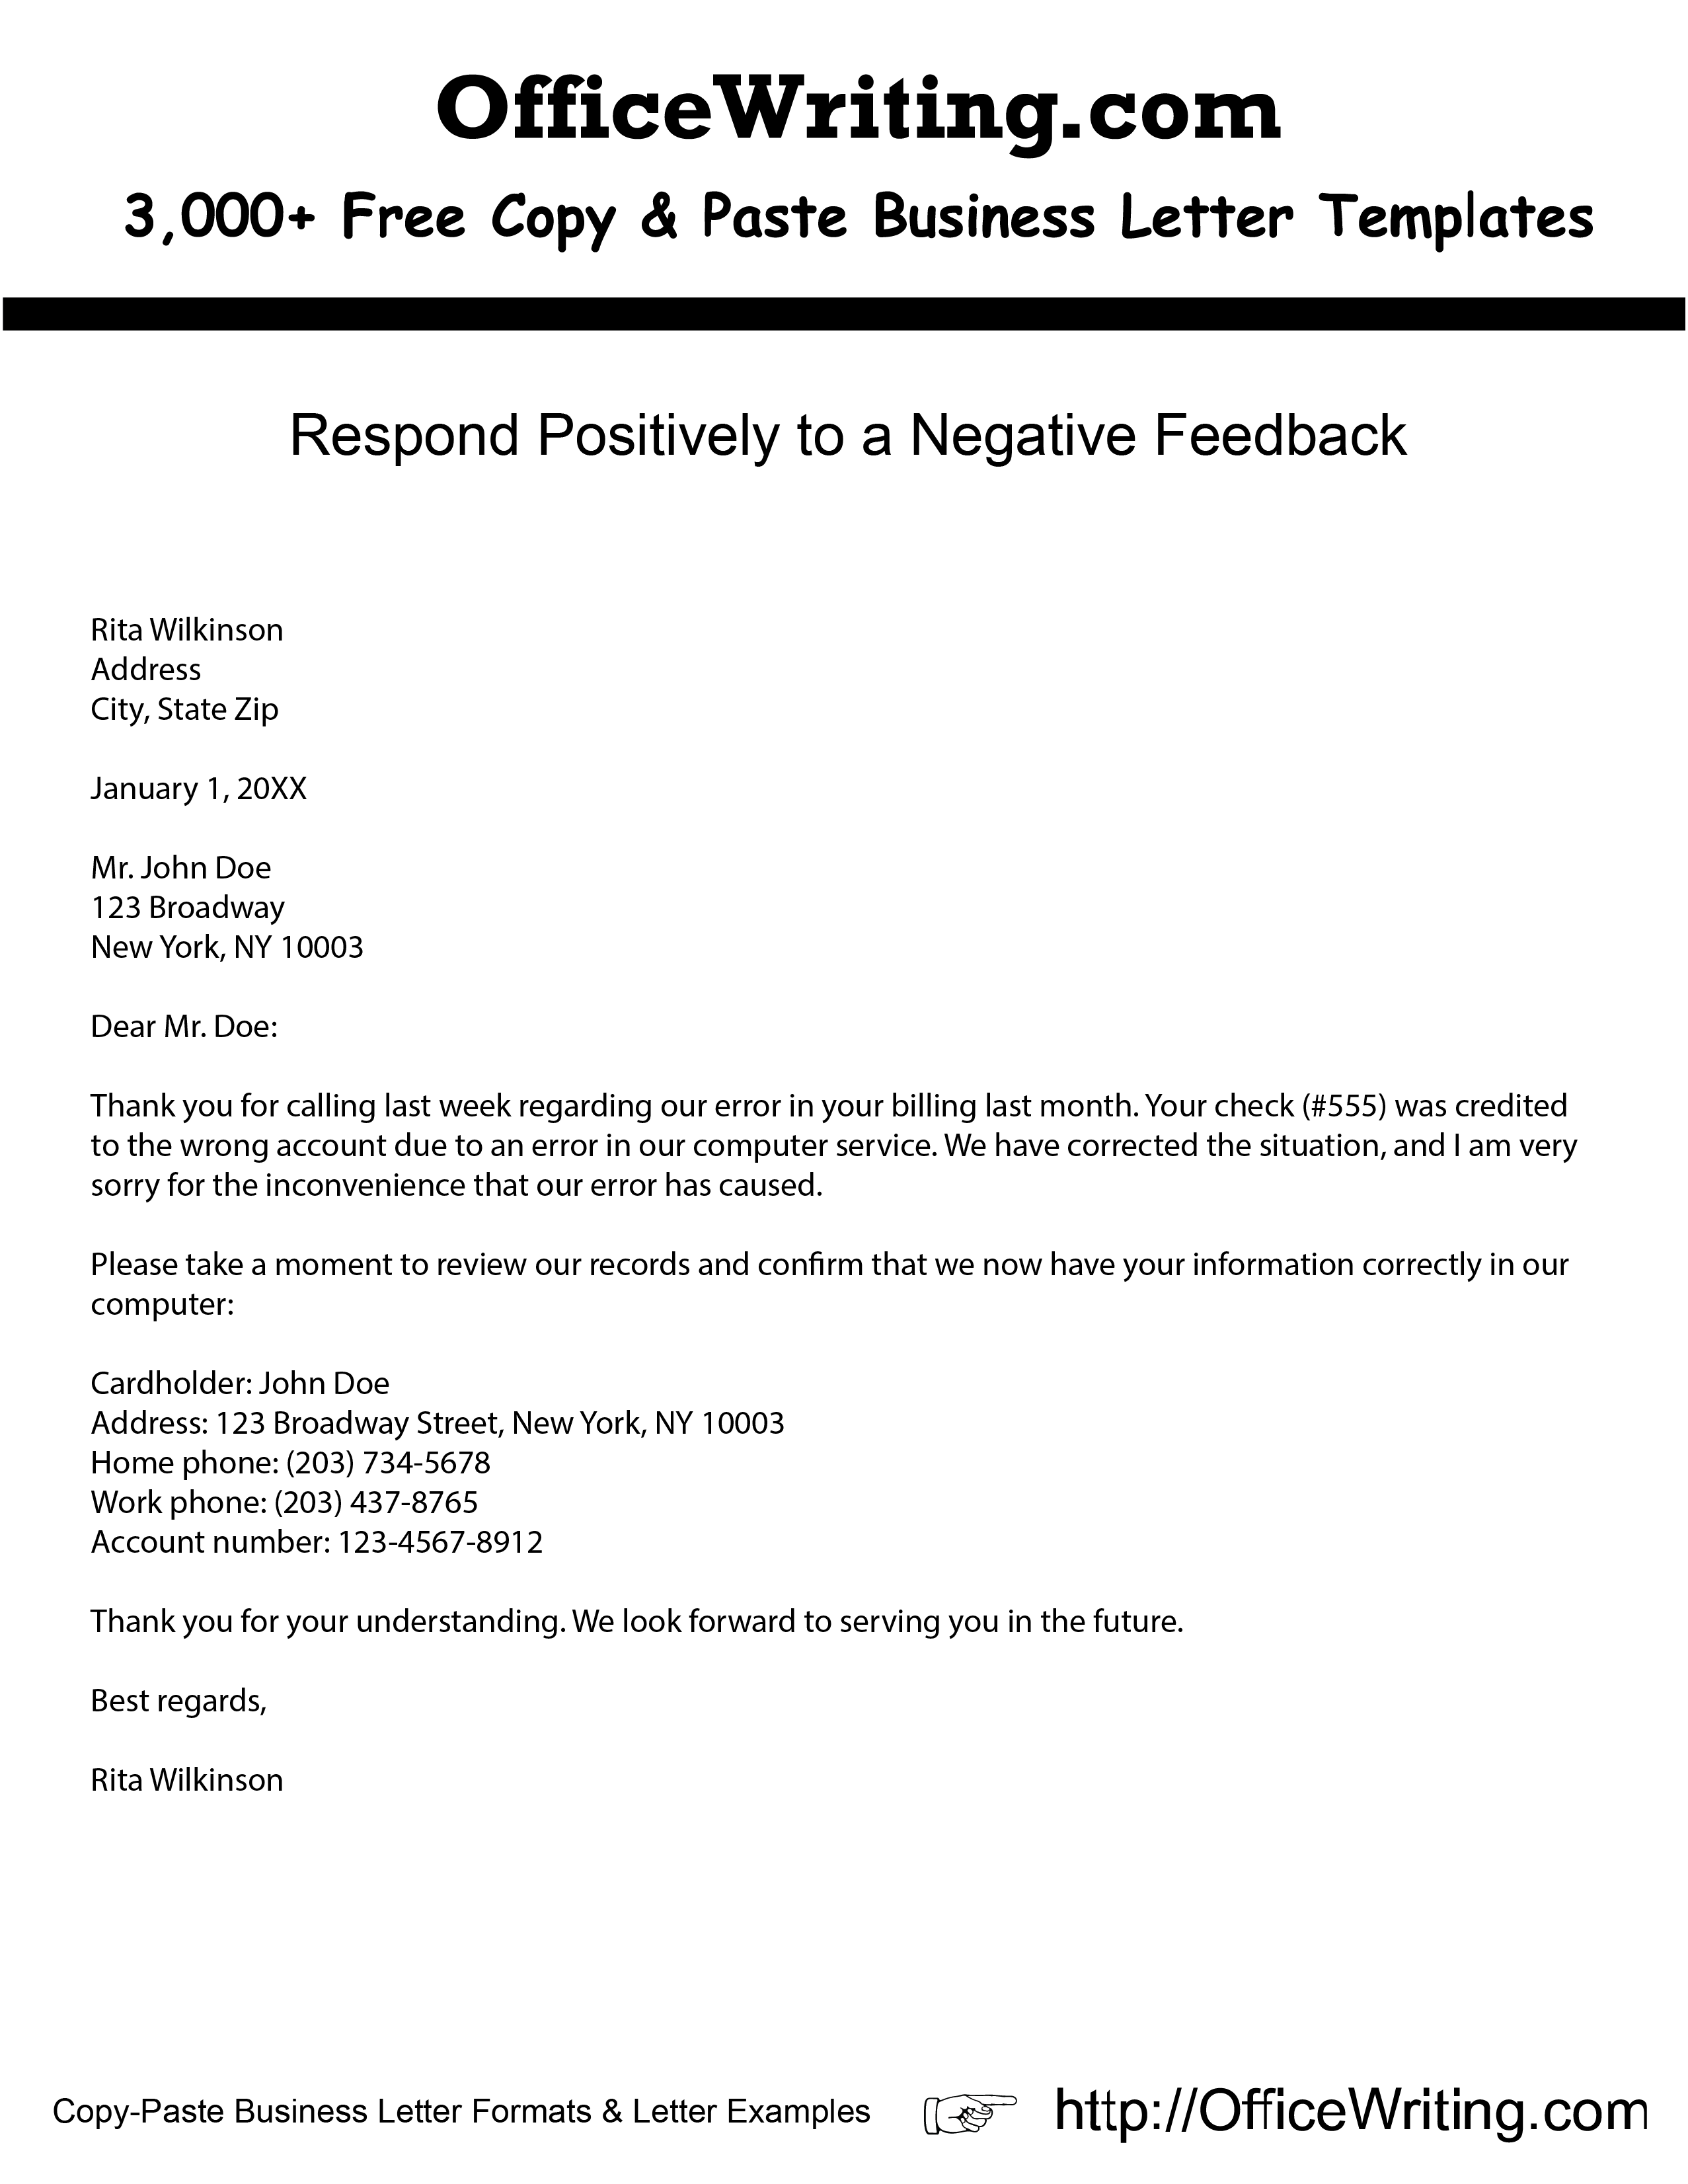 Respond positively to a negative feedback we have over 3000 free respond positively to a negative feedback we have over 3000 free sample letters letter templates and letter formats for business and personal at spiritdancerdesigns Gallery